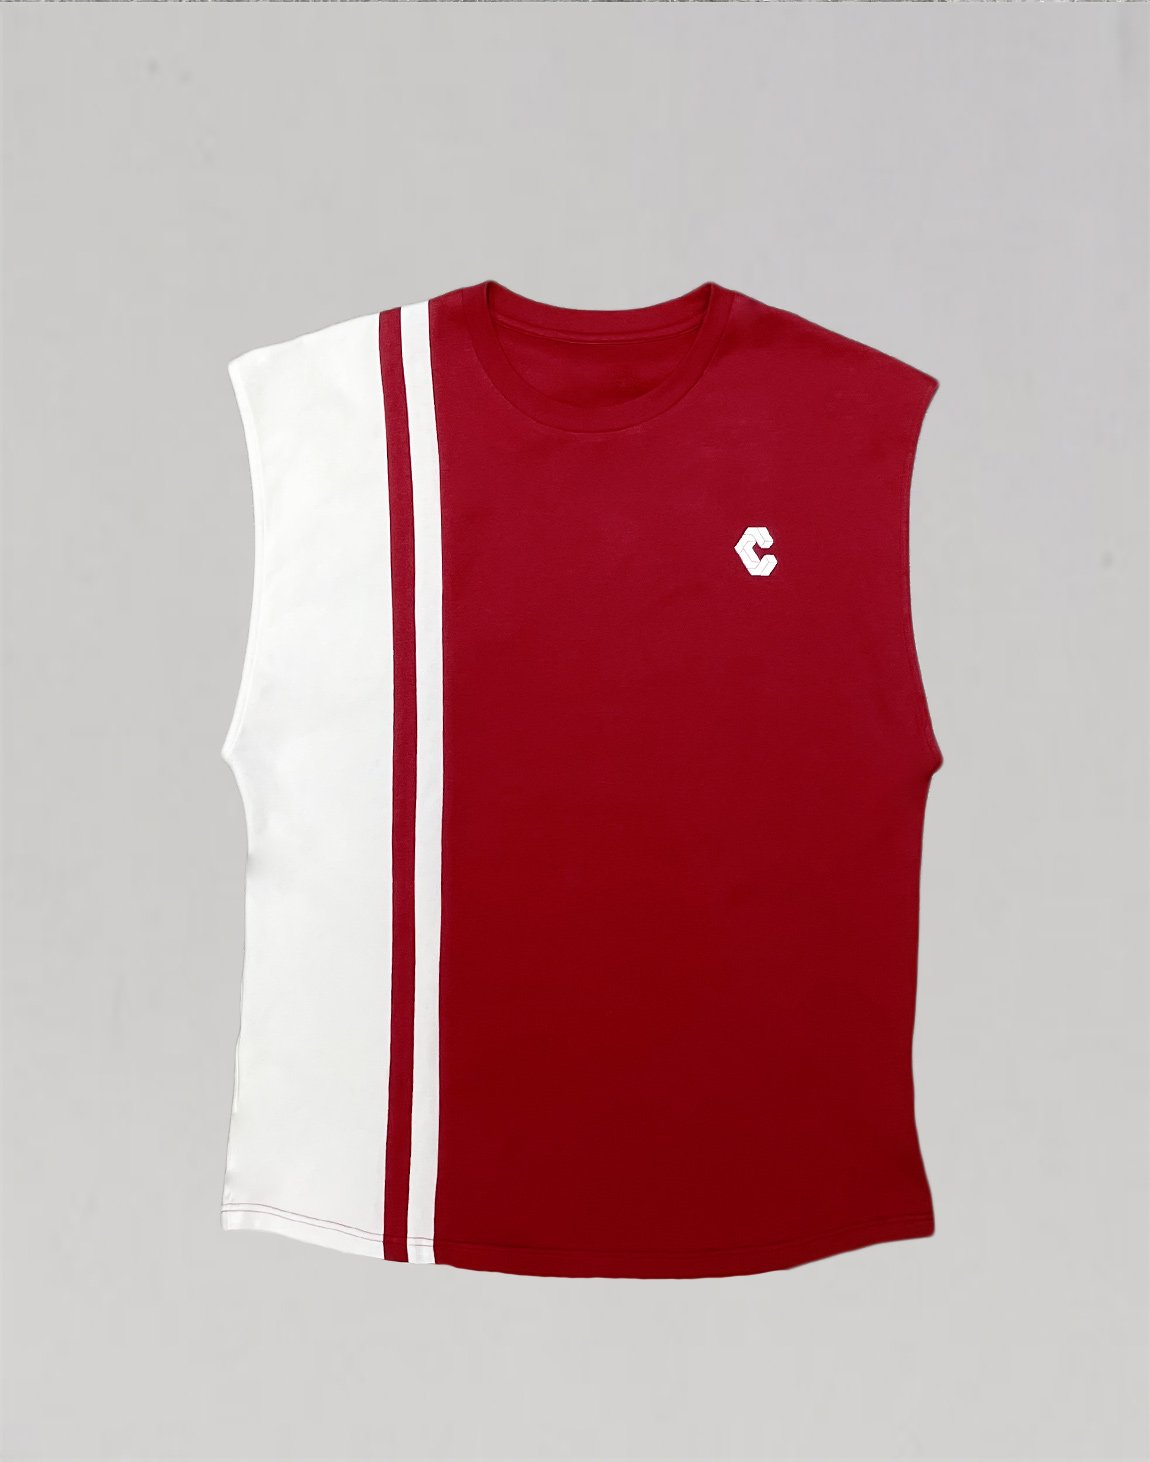 CRNOS STRAIGHT LINE LOGO TOPS【RED】